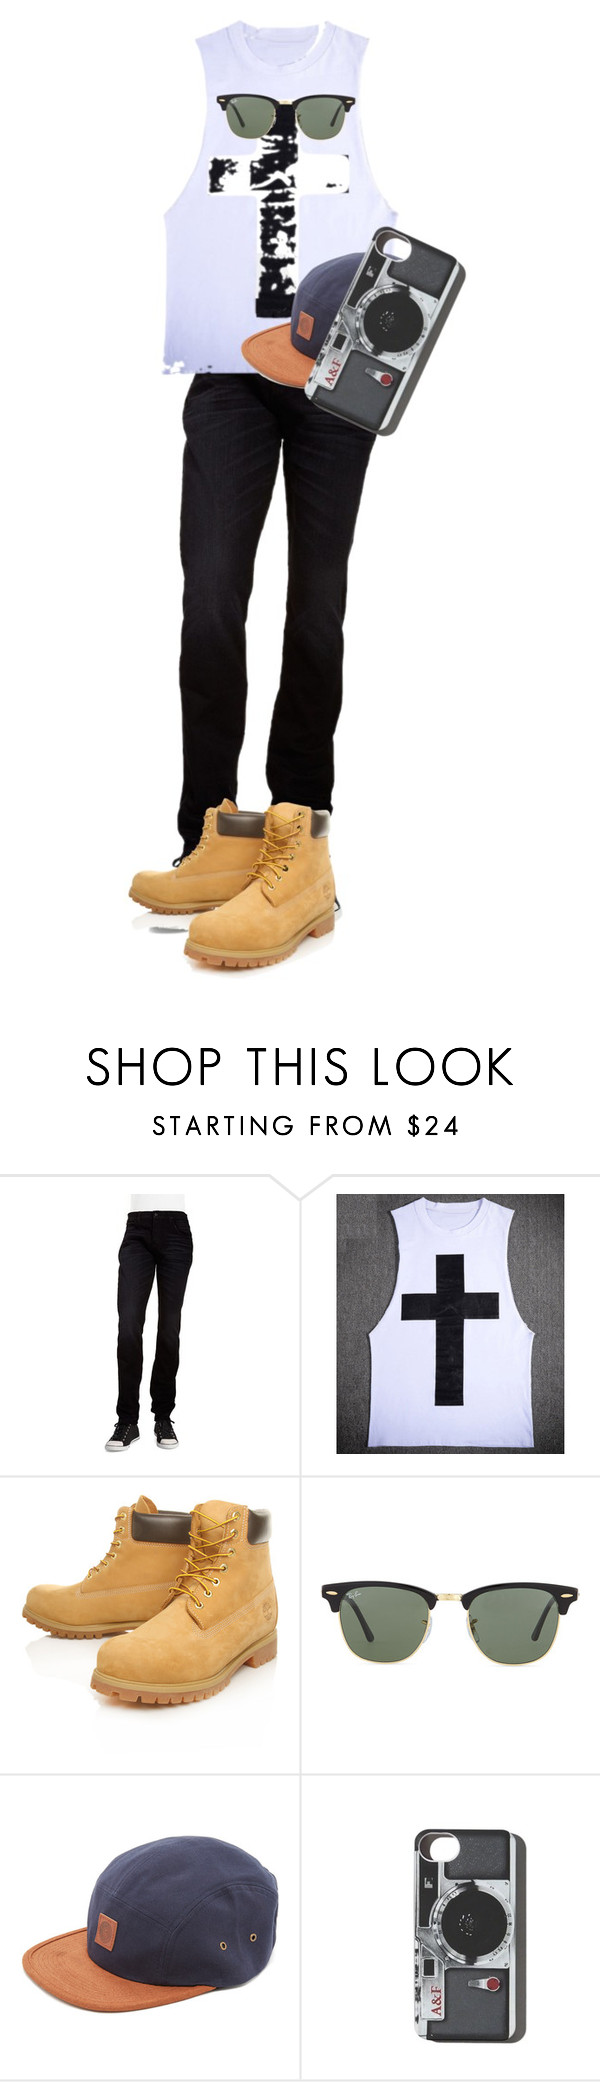 """Casual Day"" by manuelha on Polyvore featuring Hudson Jeans, Timberland, Ray-Ban, OBEY Clothing, Abercrombie & Fitch, mens, men, men's wear, mens wear and male"